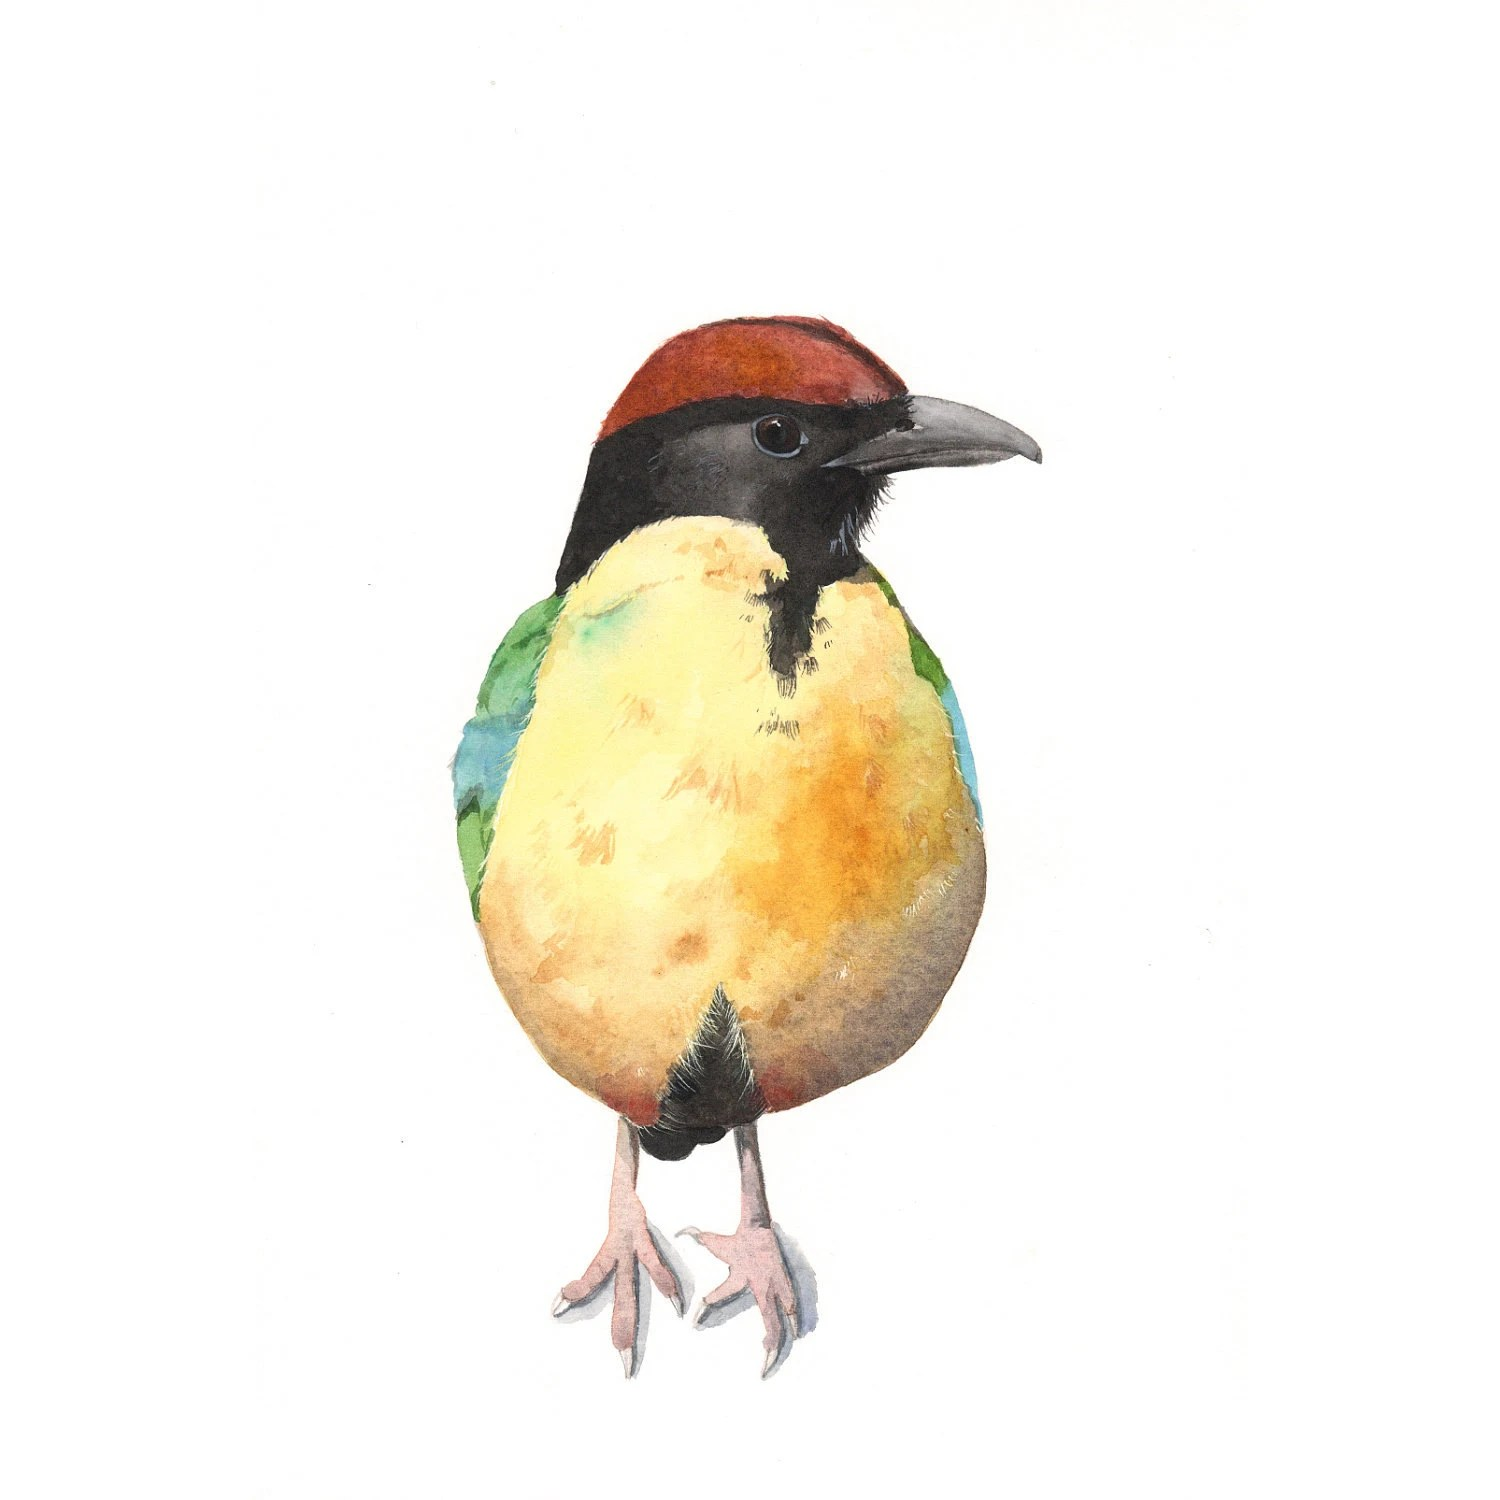 Bird Watercolor Painting - Noisy Pitta yellow nature wildlife art - N055- Print of Watercolor Painting - 5 by 7 print - Splodgepodge